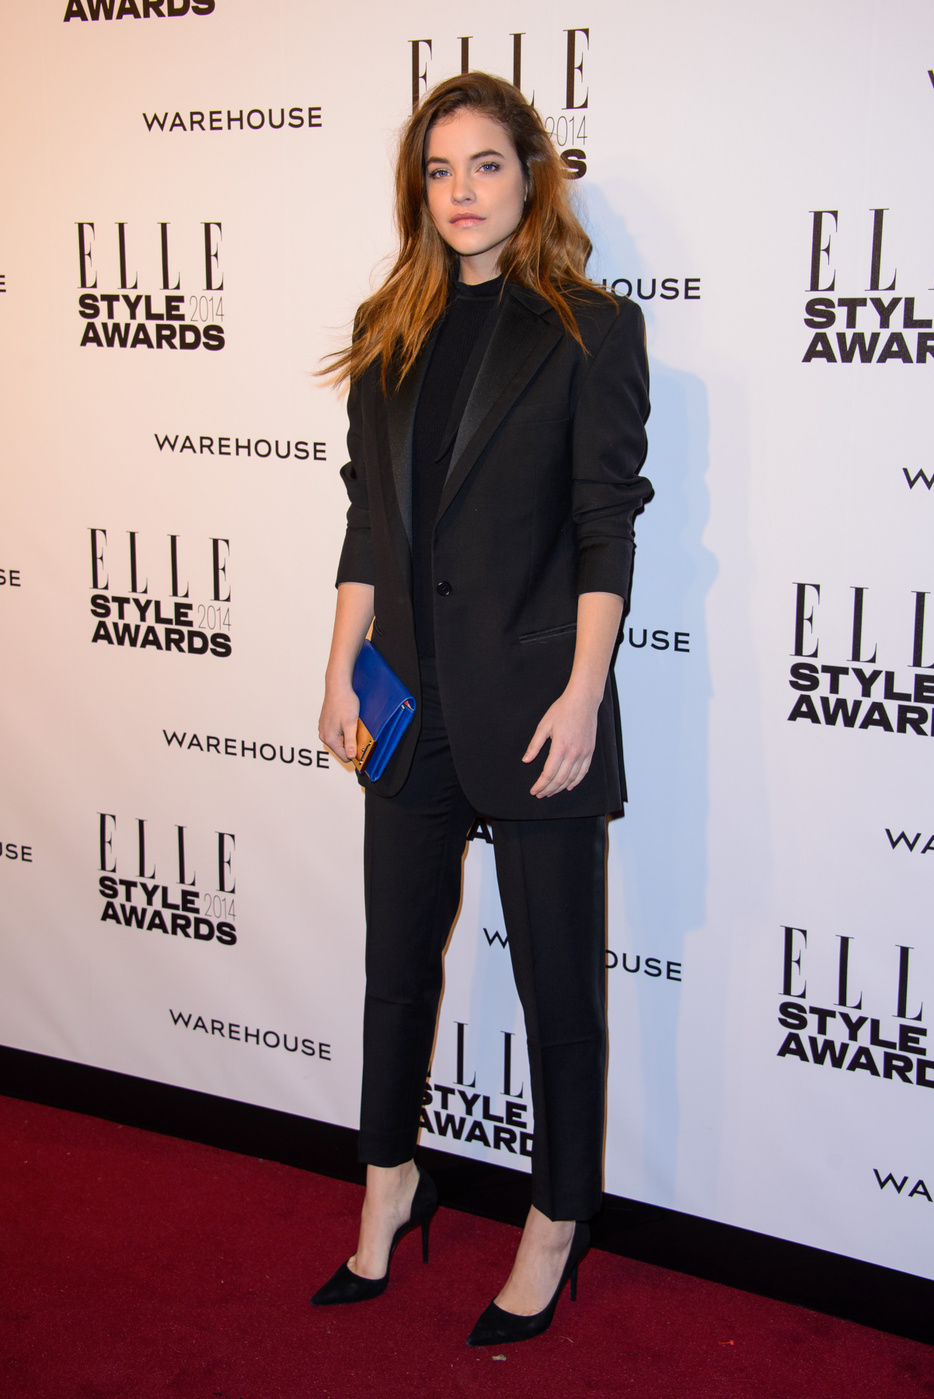 Barbara Palvin attends  the Elle Style Awards 2014 at one Embankment in London